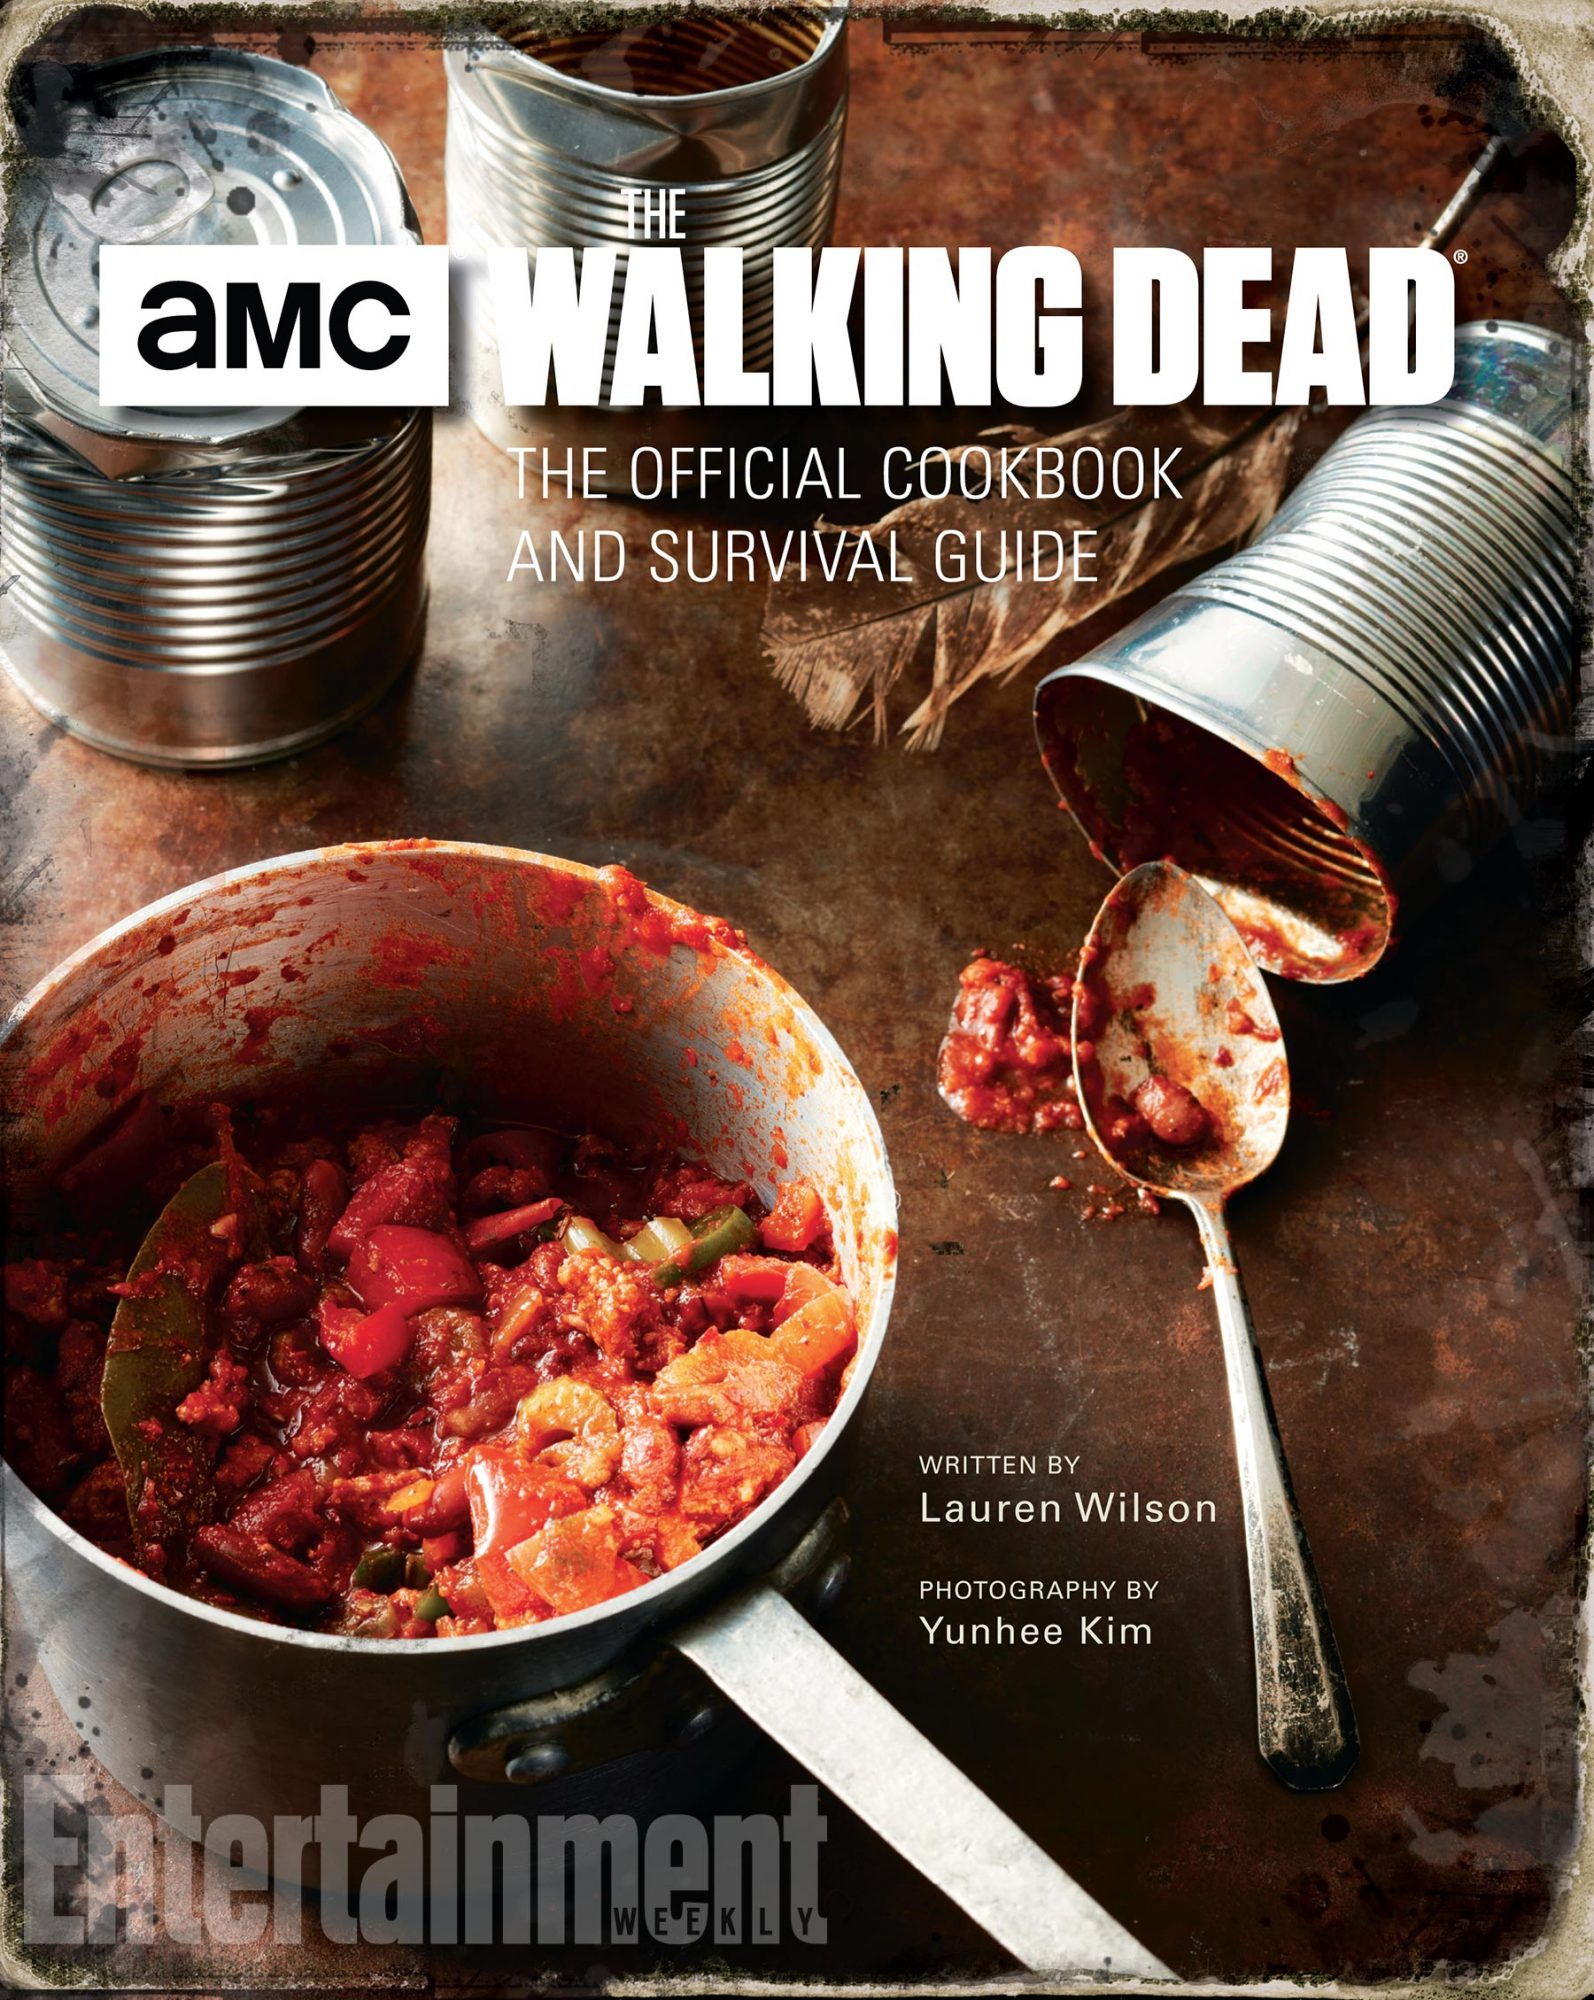 19284_WalkingDeadCBk_Case_070317.indd